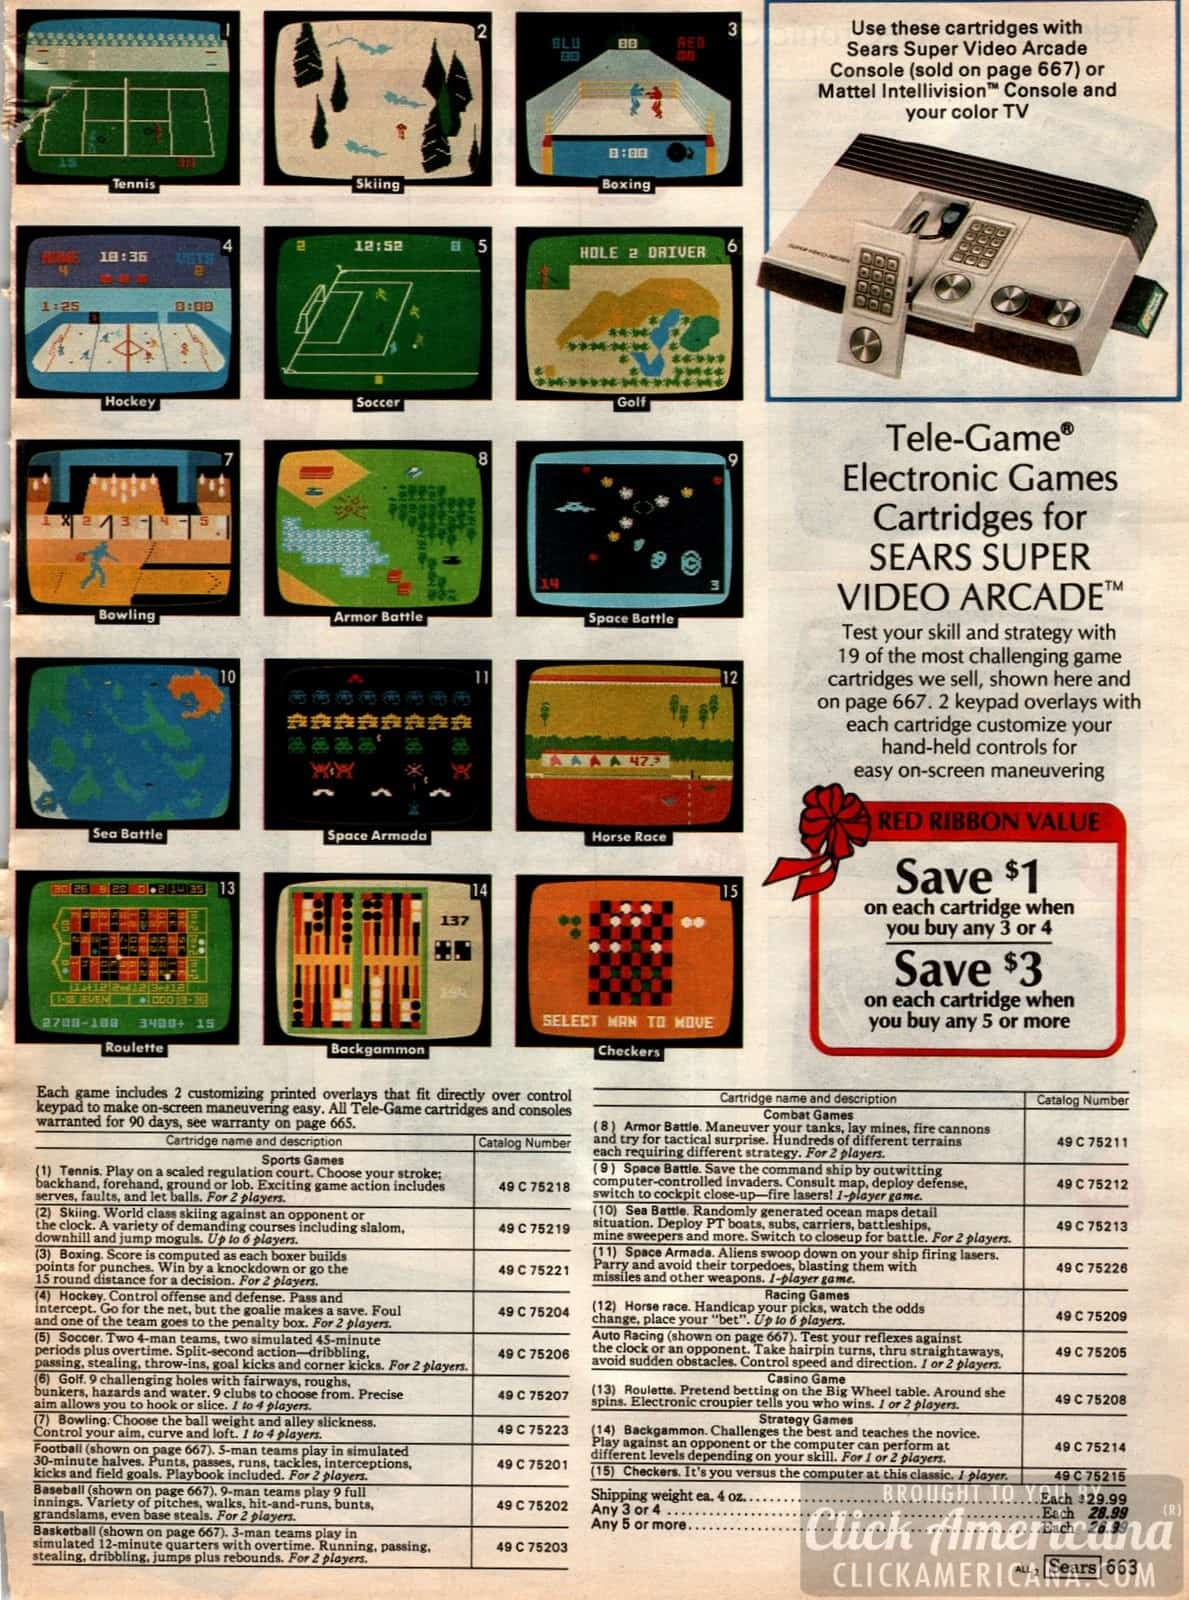 Toys, games and fun for kids in the 1981 Sears Catalog